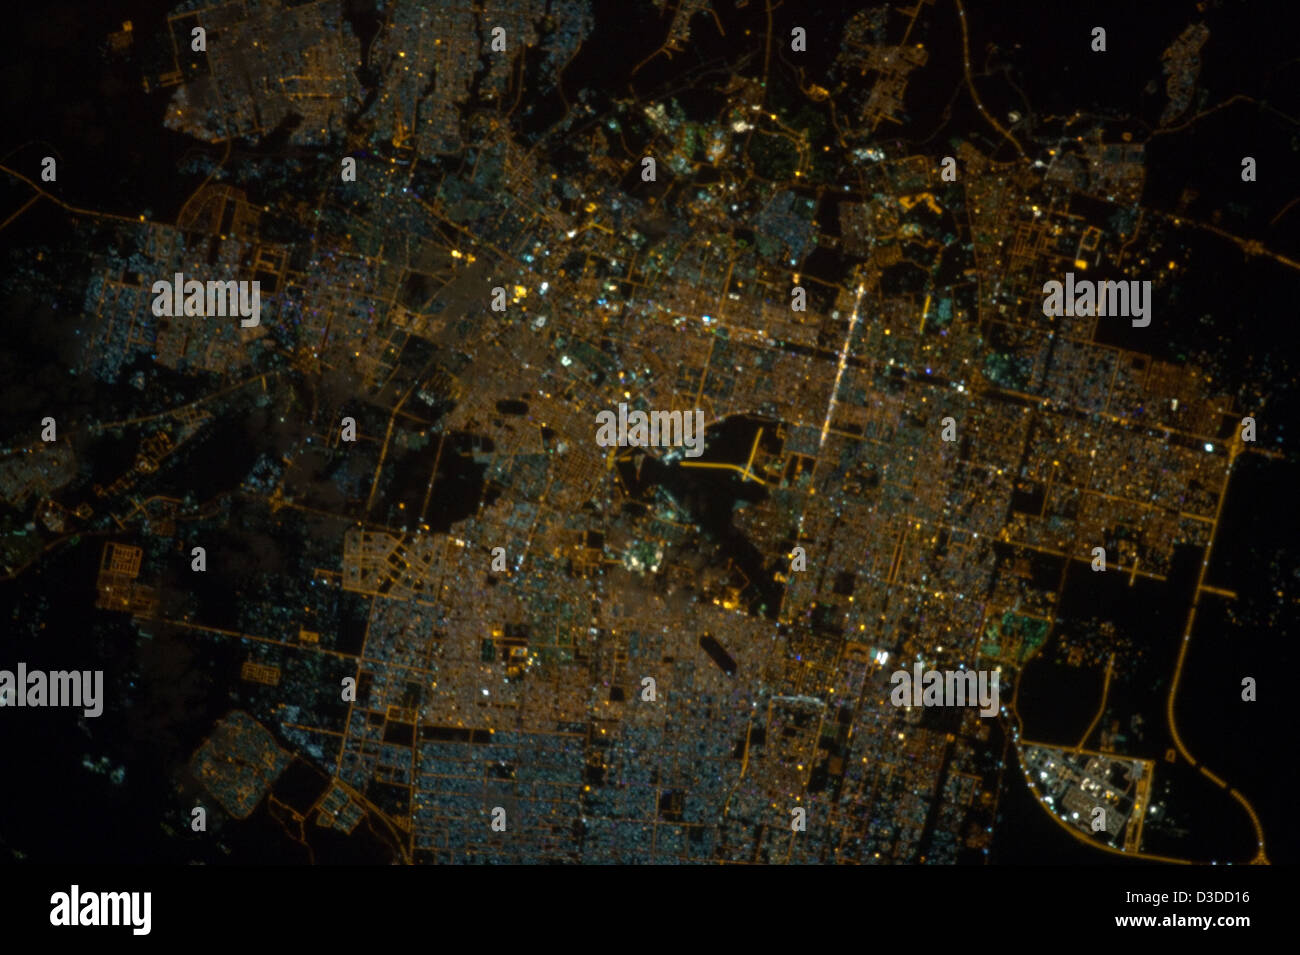 Riyadh, Saudi Arabia at Night (NASA, International Space Station, 11/13/12) - Stock Image